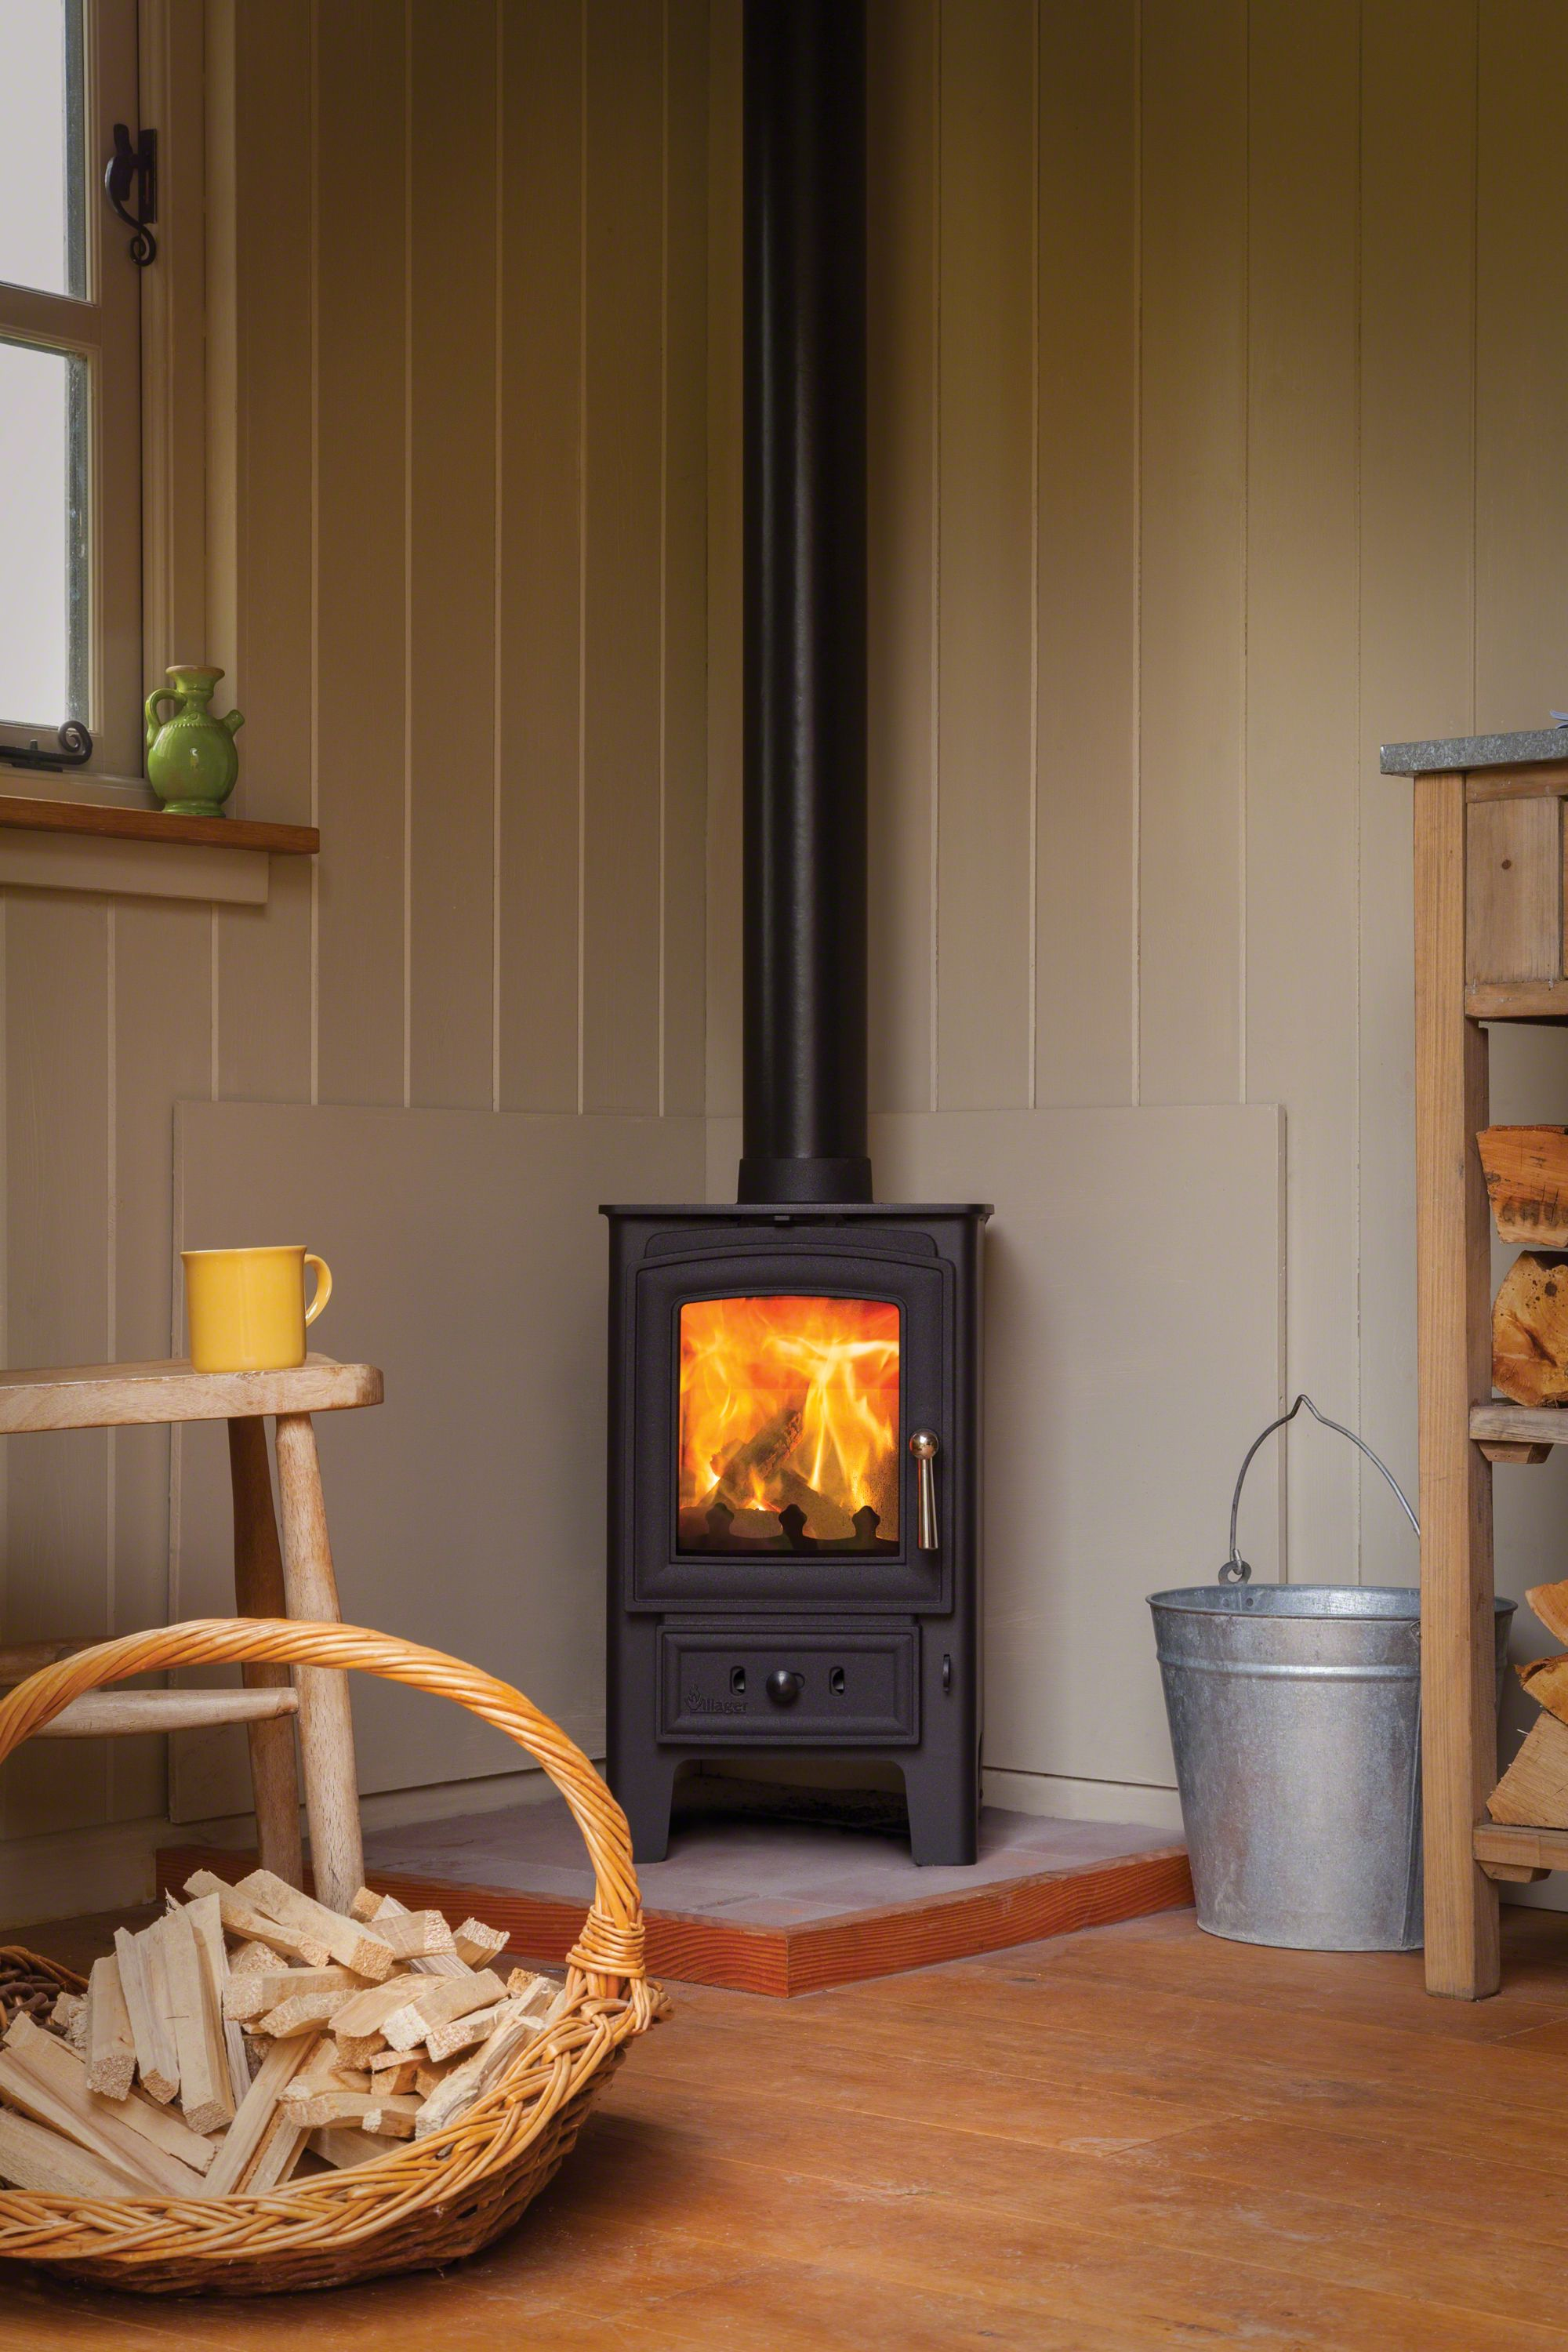 Multi fuel or wood burning stove - Villager Puffin Heron Wood Burning And Multi Fuel Stoves Range Timeless Classics